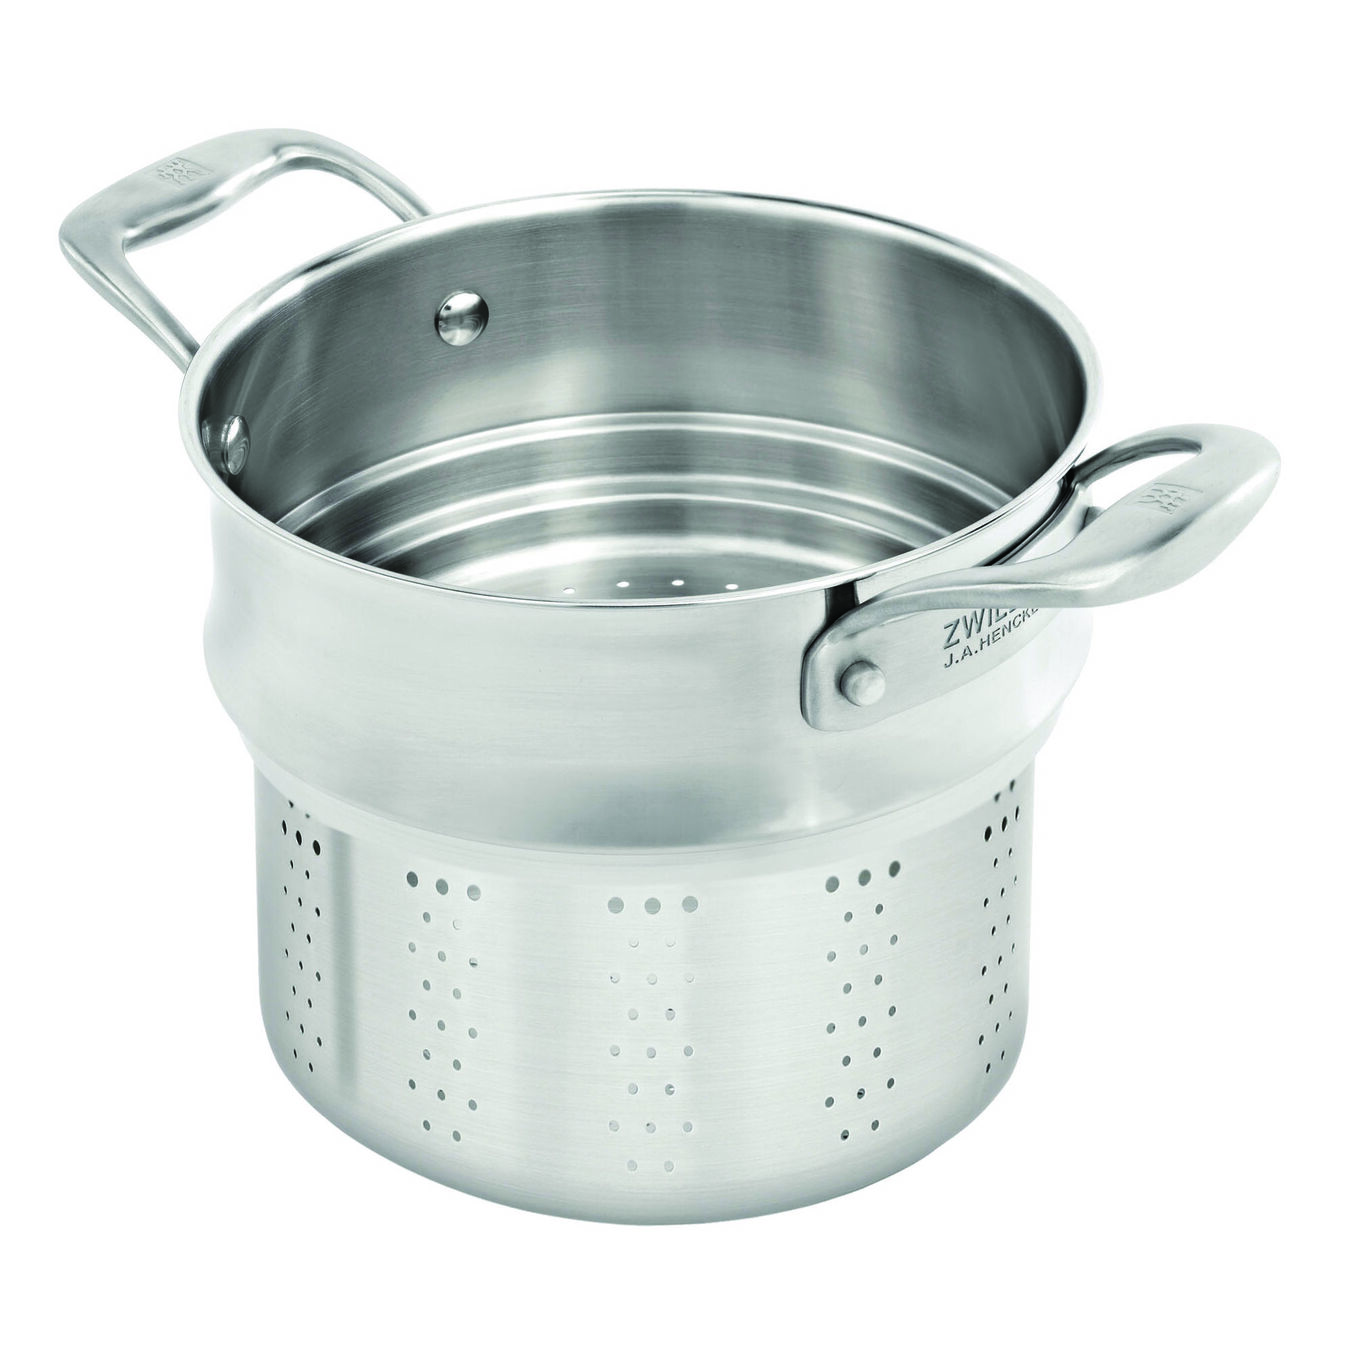 24 cm 18/10 Stainless Steel Steamer insert,,large 1